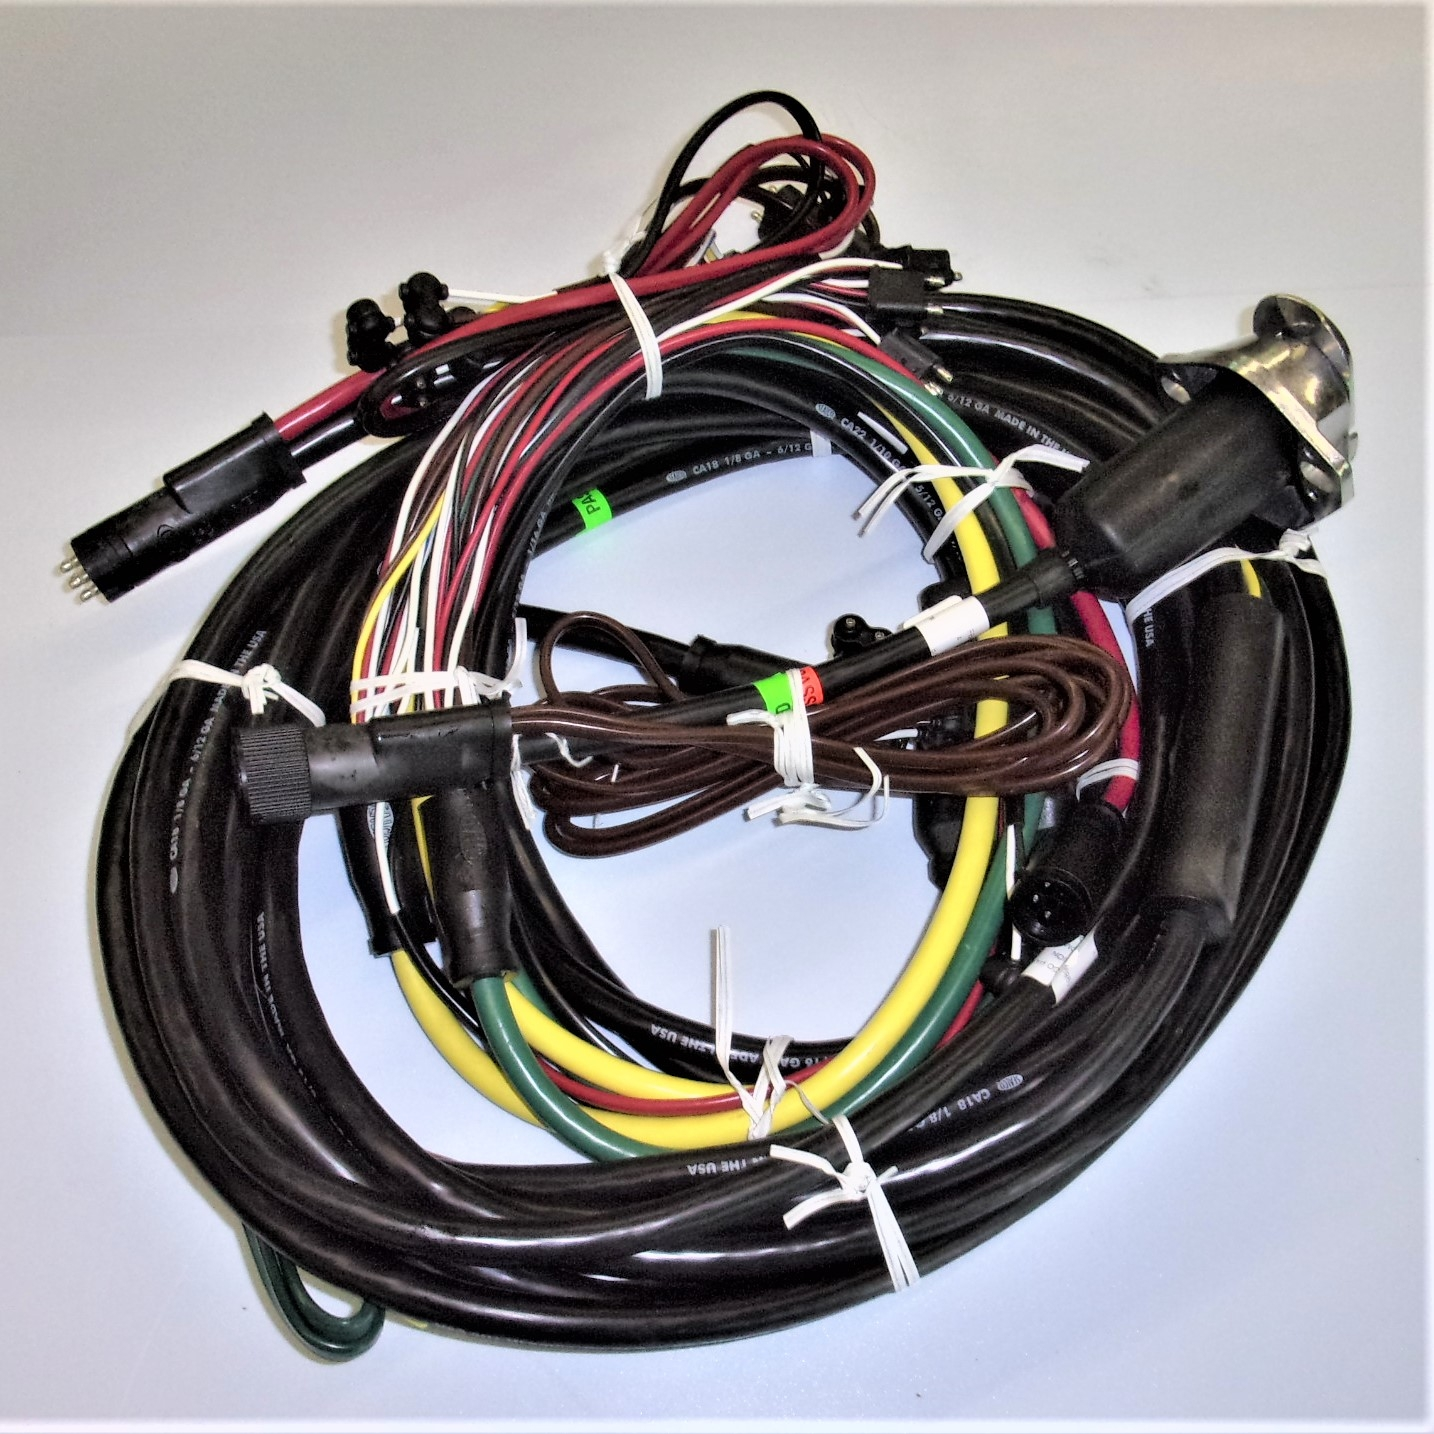 Universal 48' Trailer Wiring Harness Kit | ILoca Services, Inc. | Ww Stock Trailer Wiring Harness For Trailer Lights |  | ILoca Services